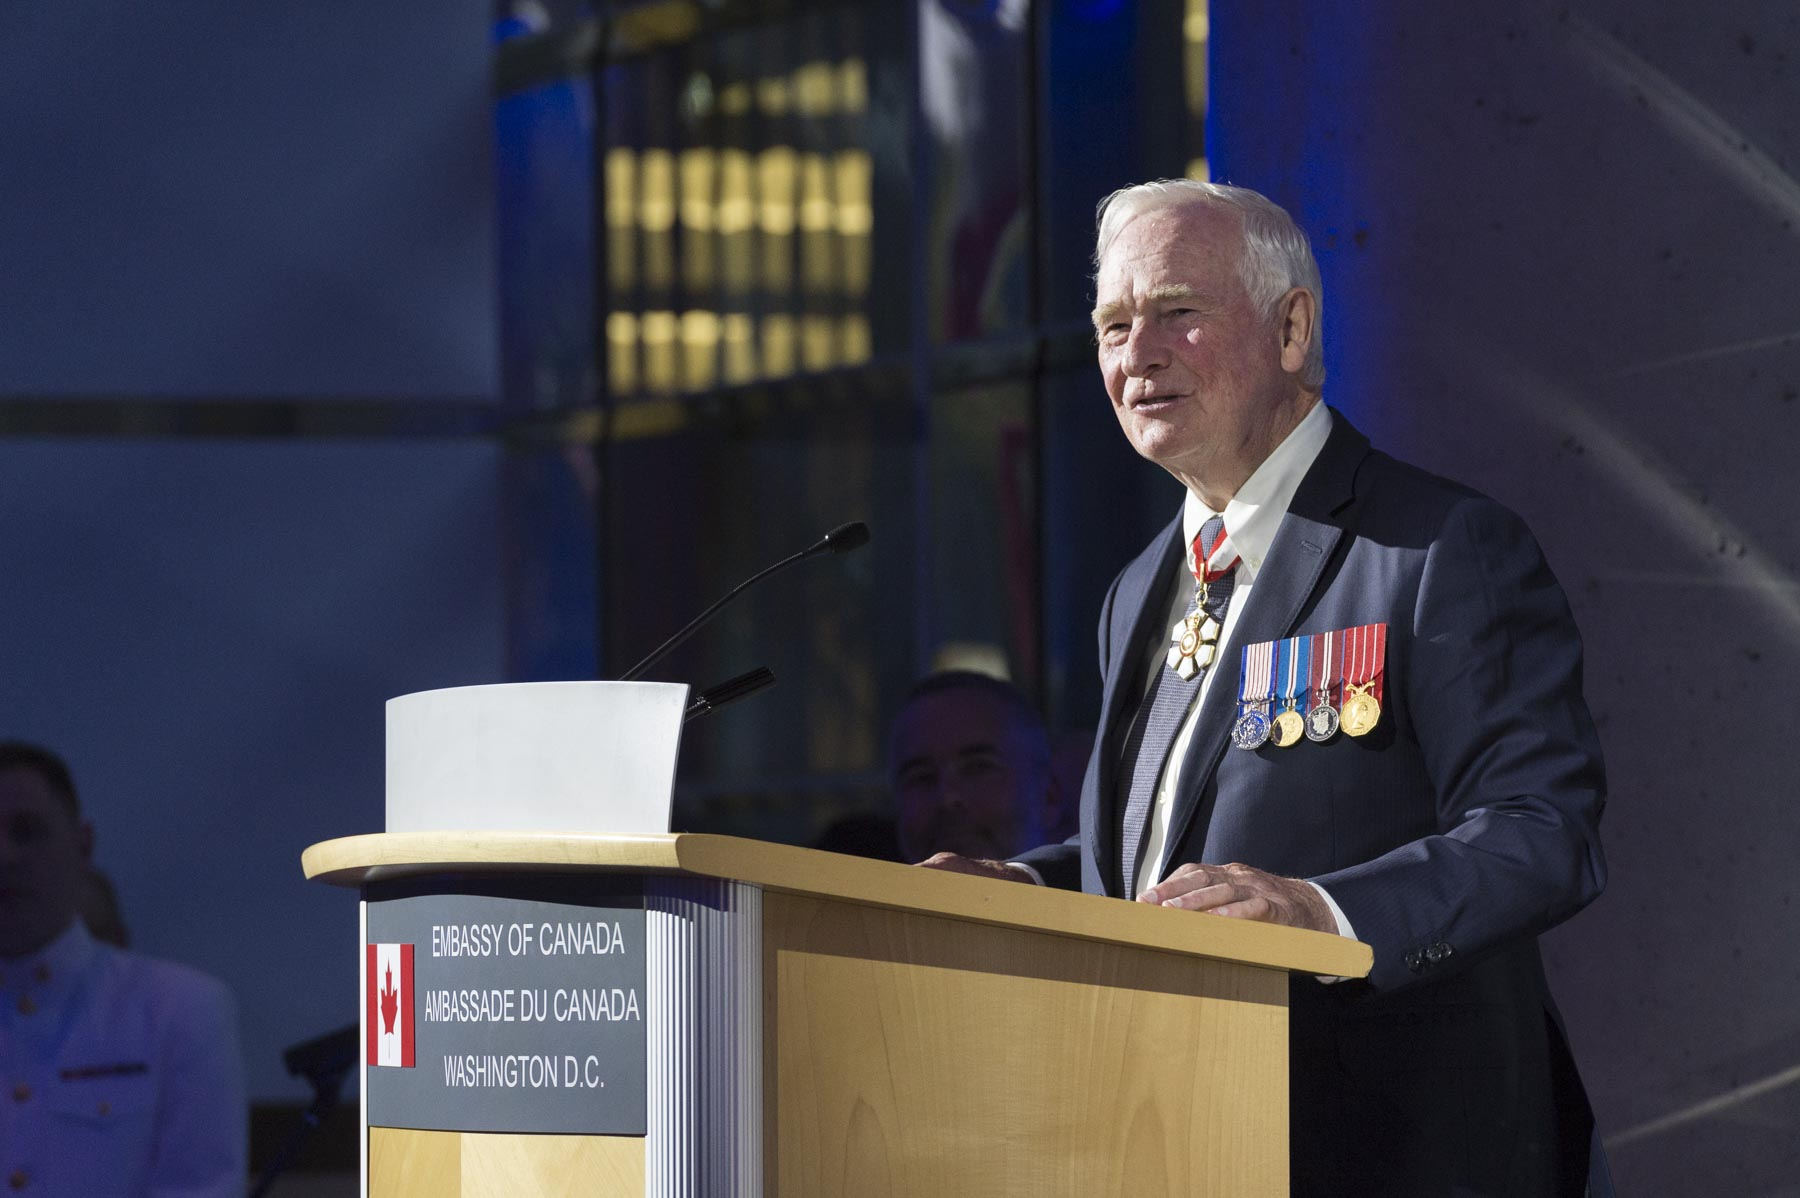 """Our two countries are indeed partners in defence,"" said the Governor General during the Partners in Defence Reception. ""This is my seventh visit to the United States as governor general and commander-in-chief of Canada, and during those trips, I've had the privilege of witnessing the close co-operation that exists between our respective armed forces on a number of occasions."""